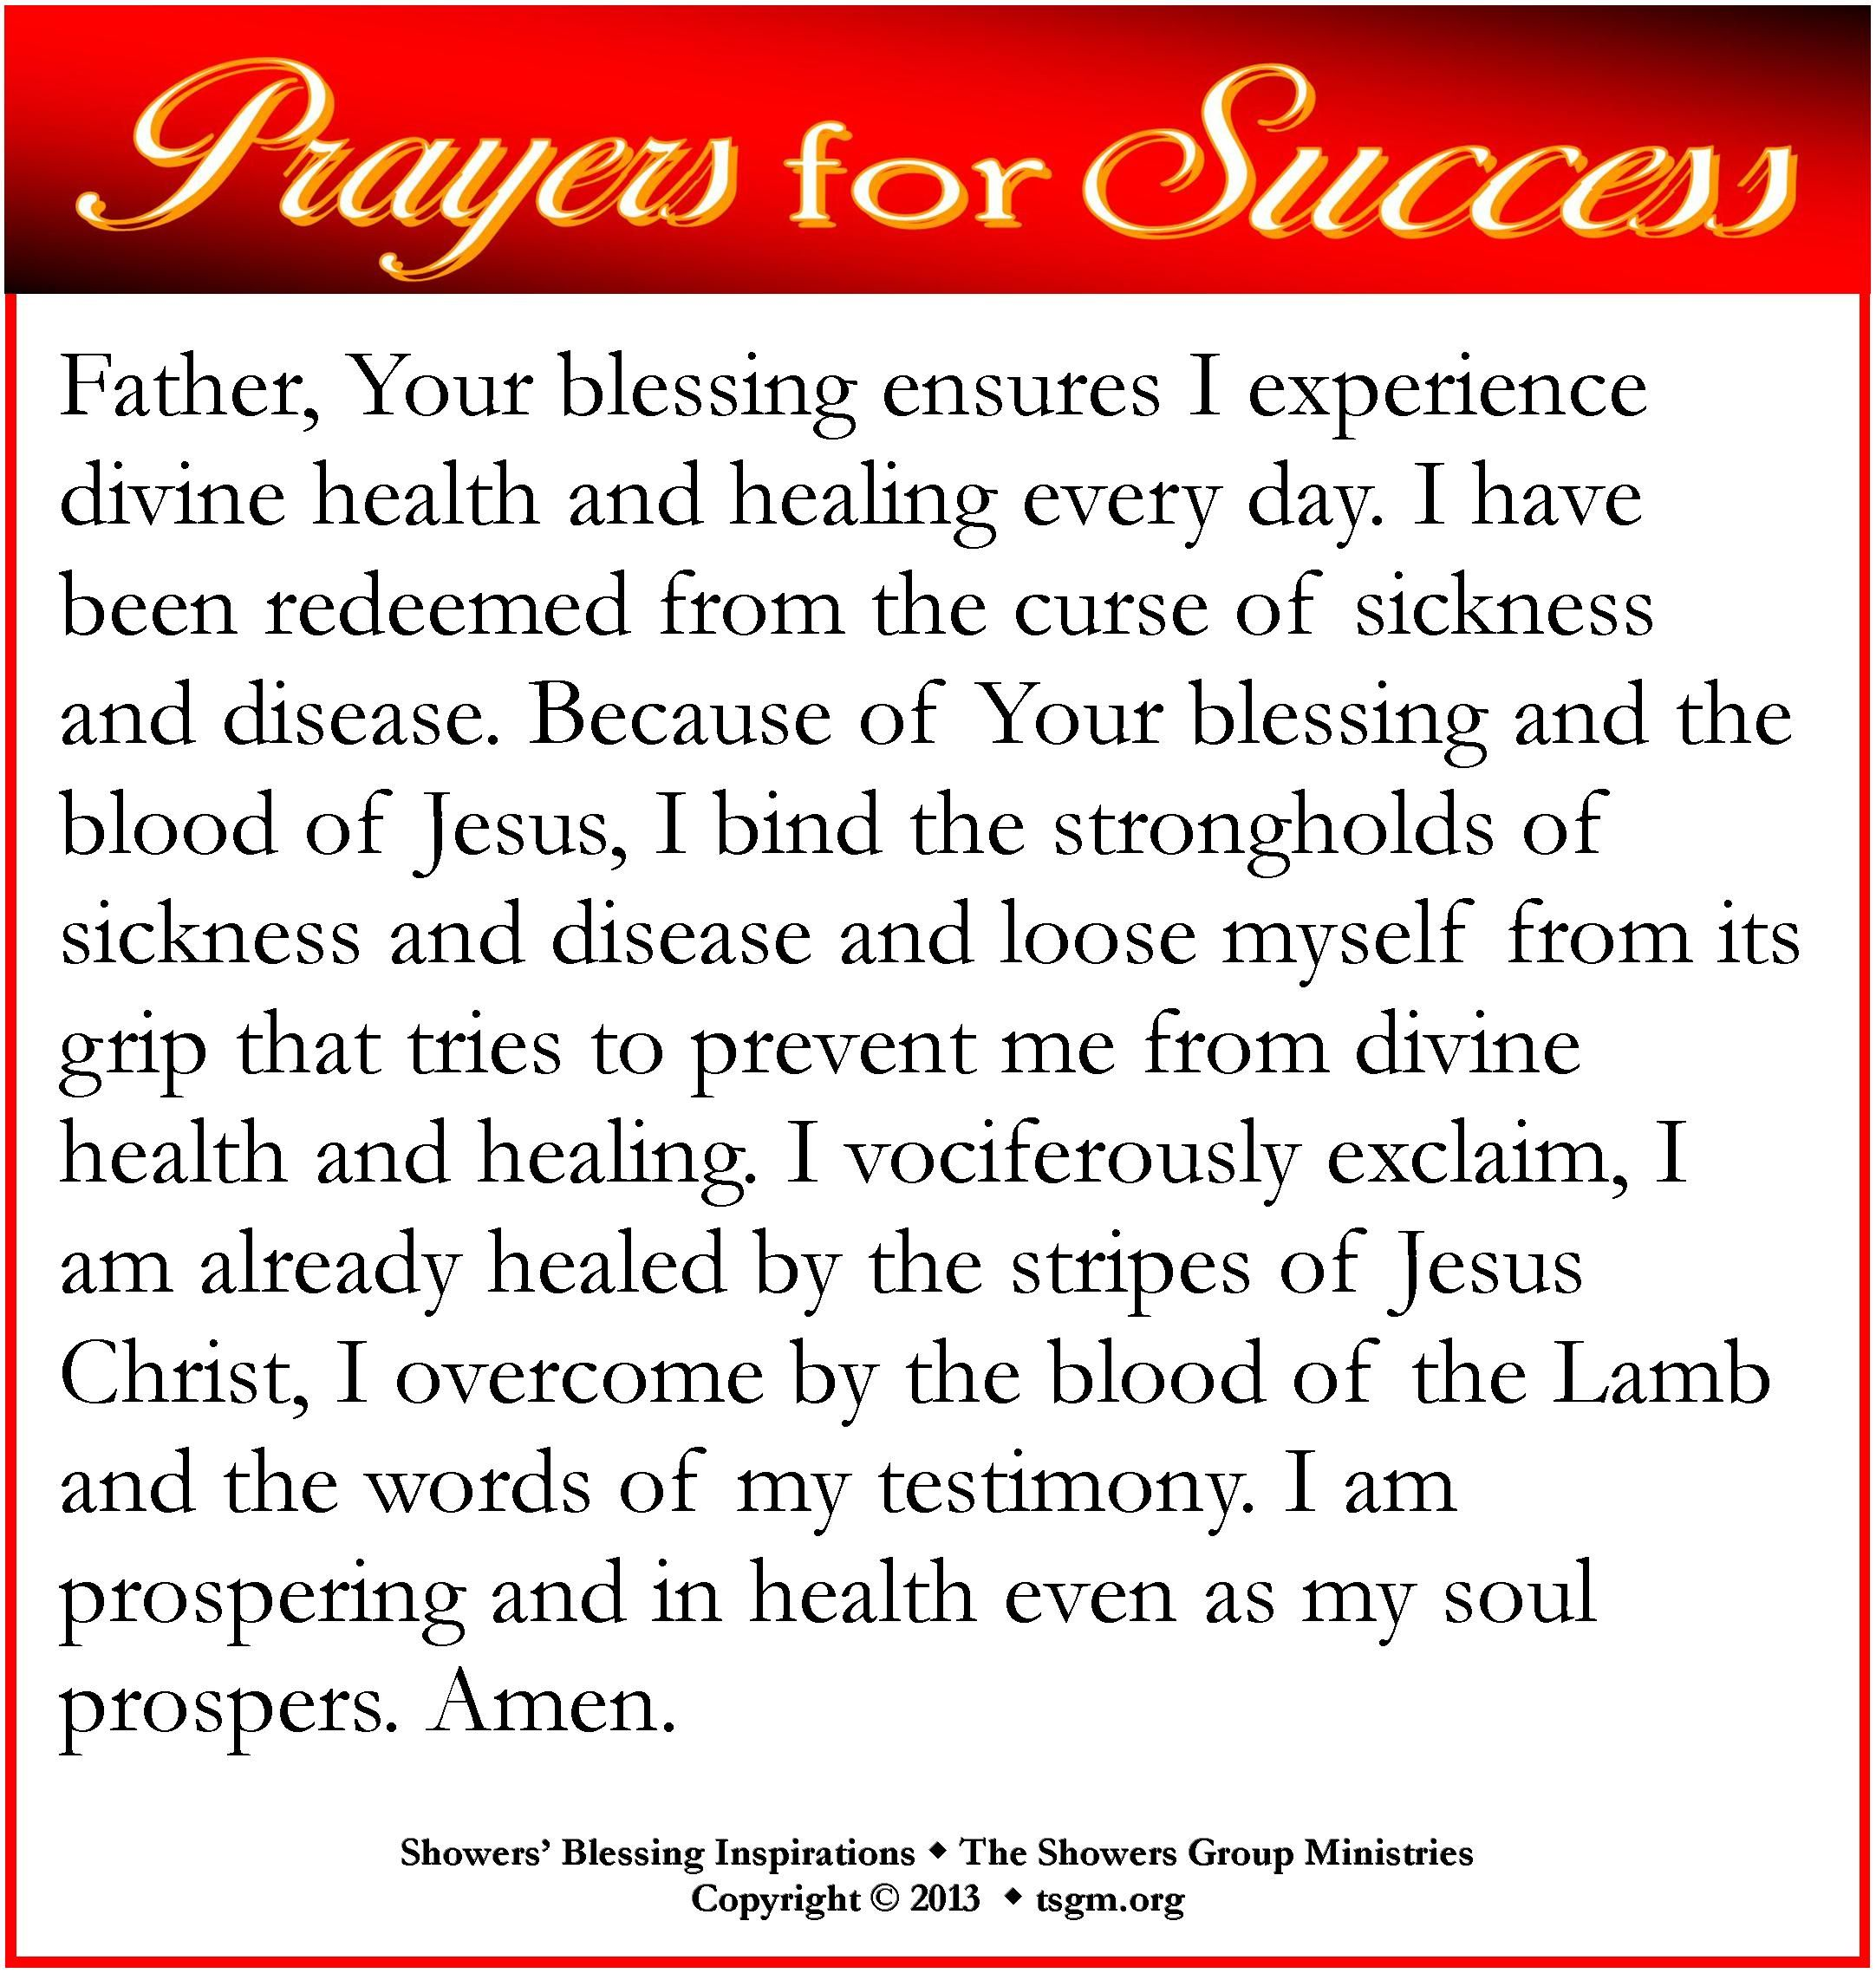 Father, Your Blessing Ensures I Experience Divine Health